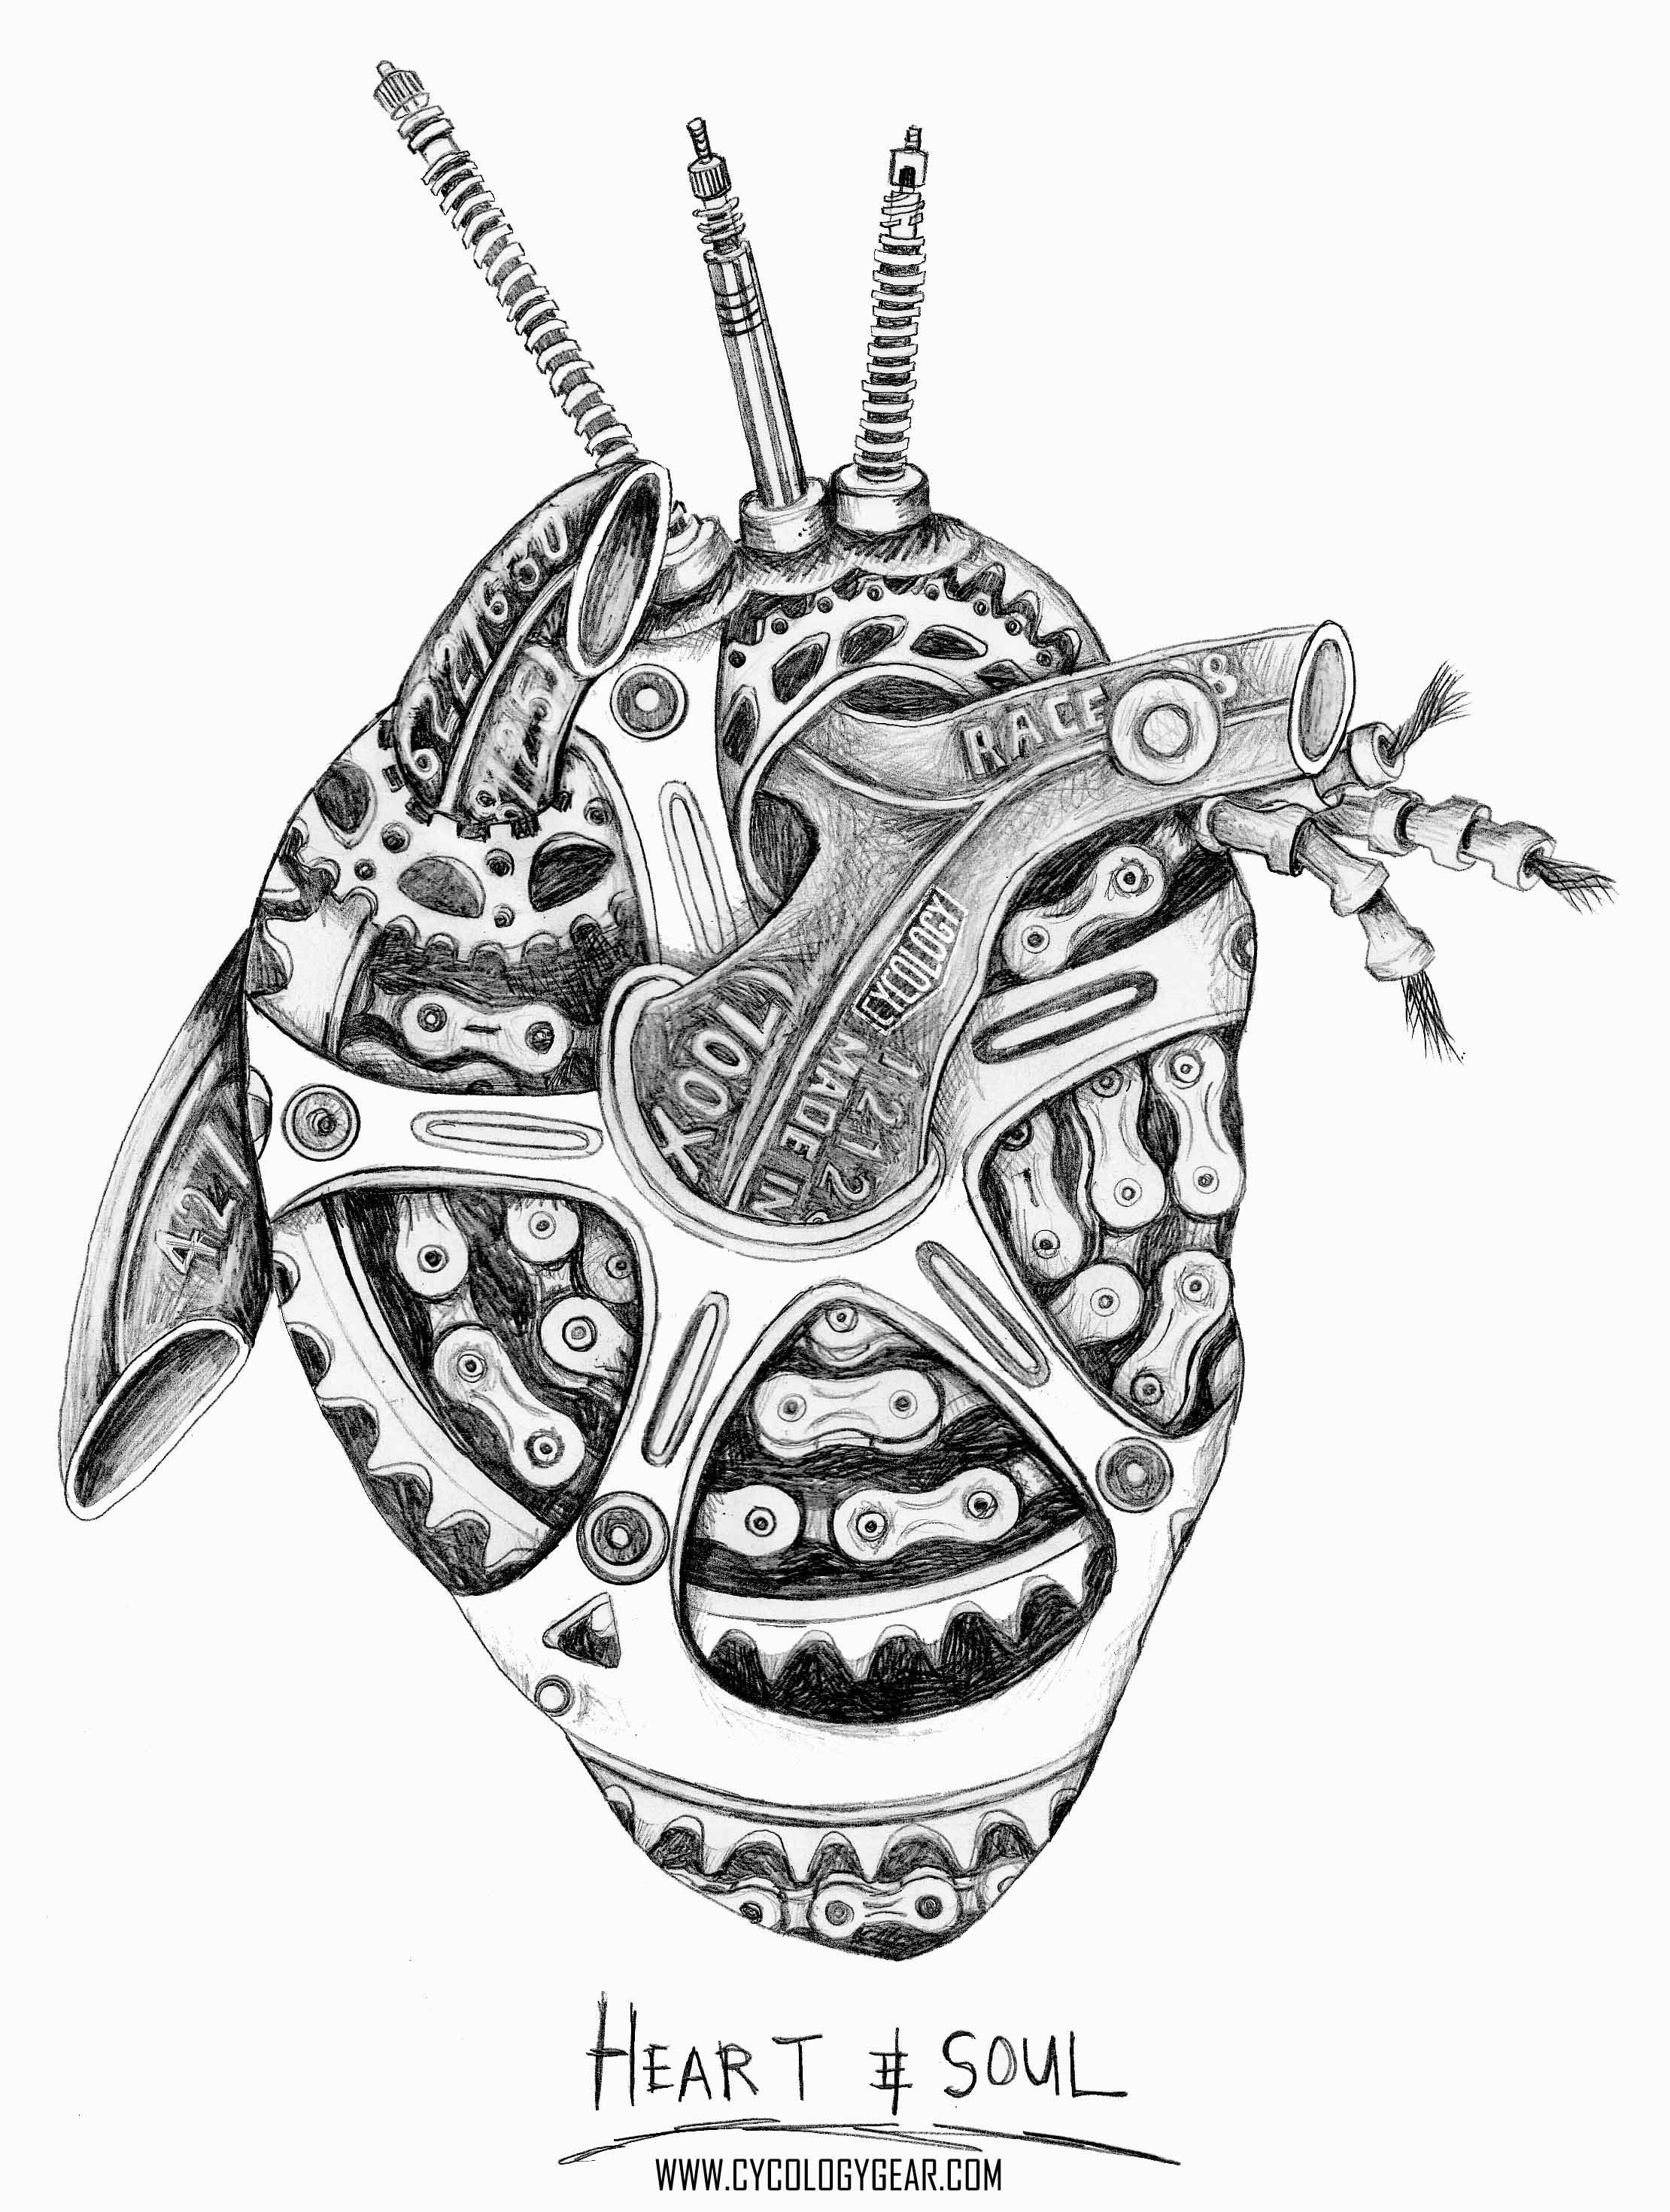 A Lead Pencil On Paper Drawing A Heart Made From Bicycle Parts